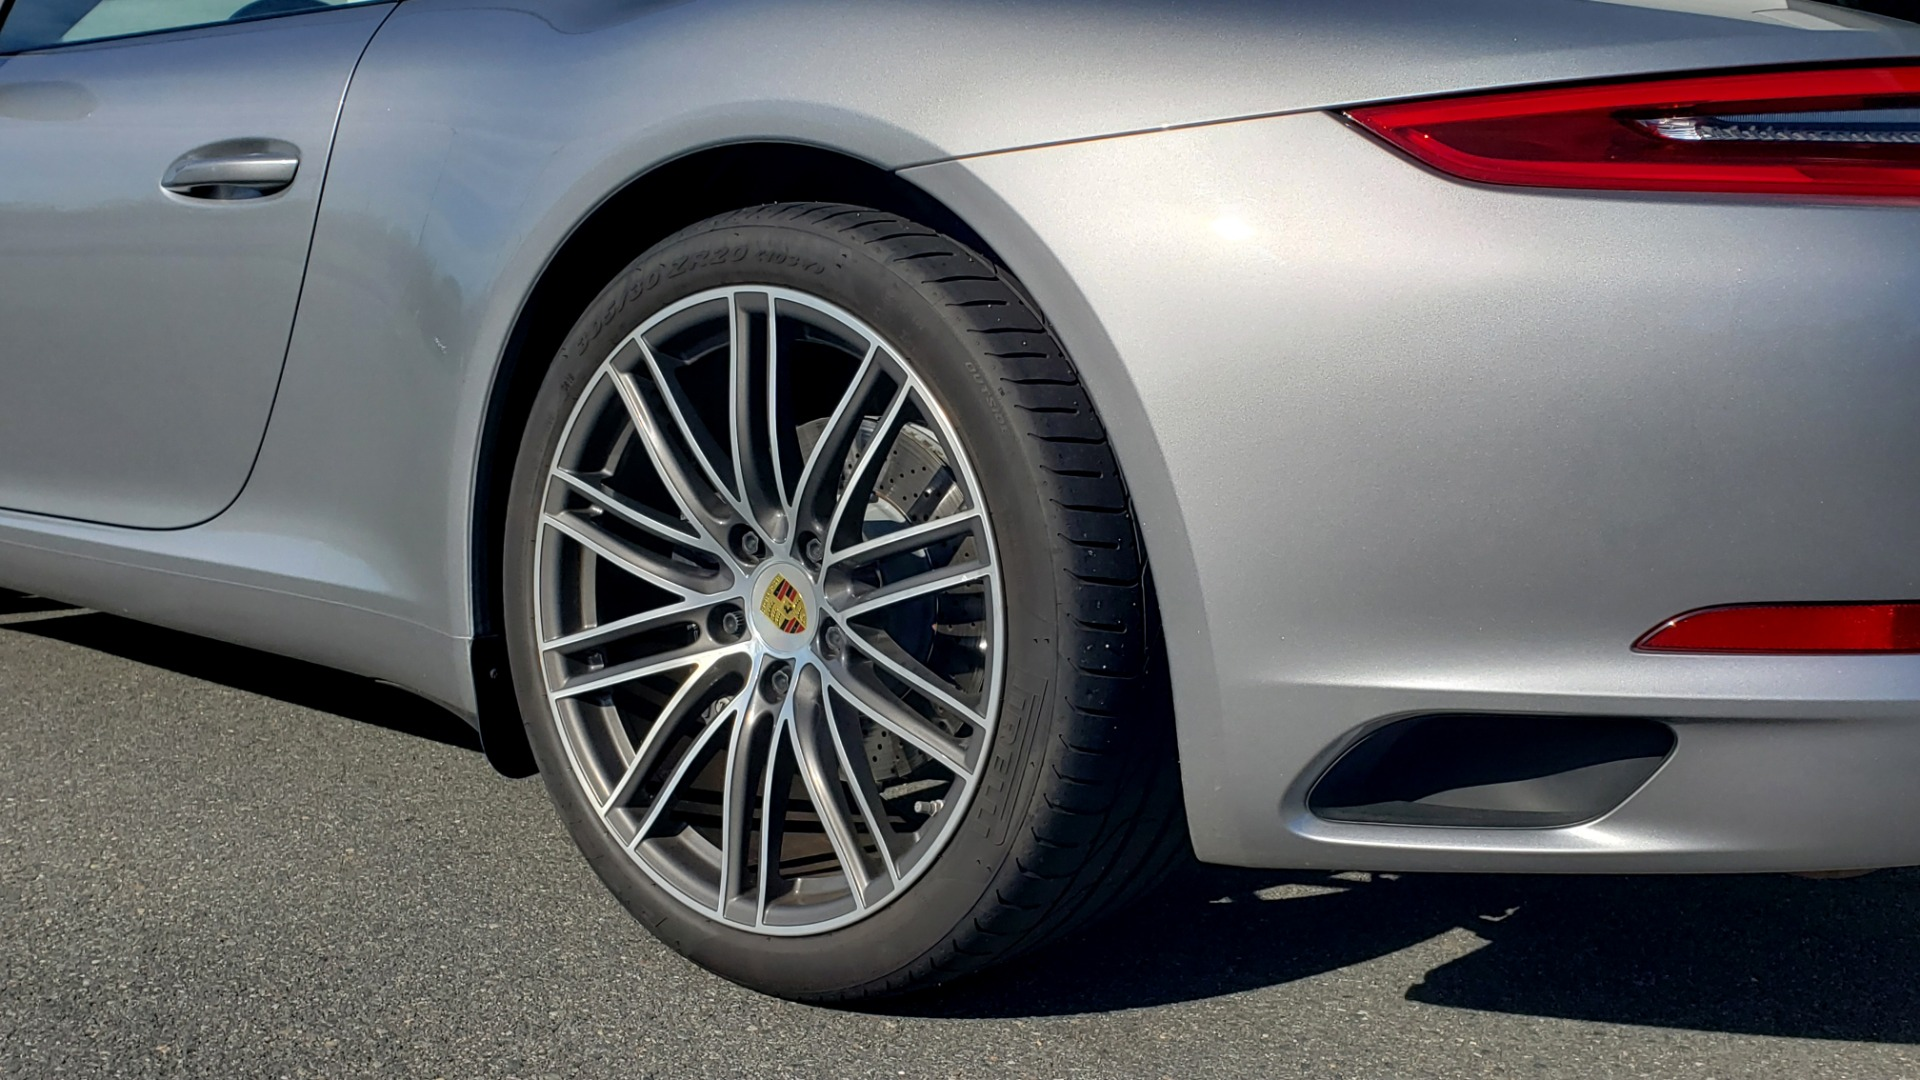 Used 2017 Porsche 911 CARRERA COUPE / 3.0L / 7-SPD MAN / NAV / PDLS / SUNROOF / REARVIEW for sale Sold at Formula Imports in Charlotte NC 28227 74